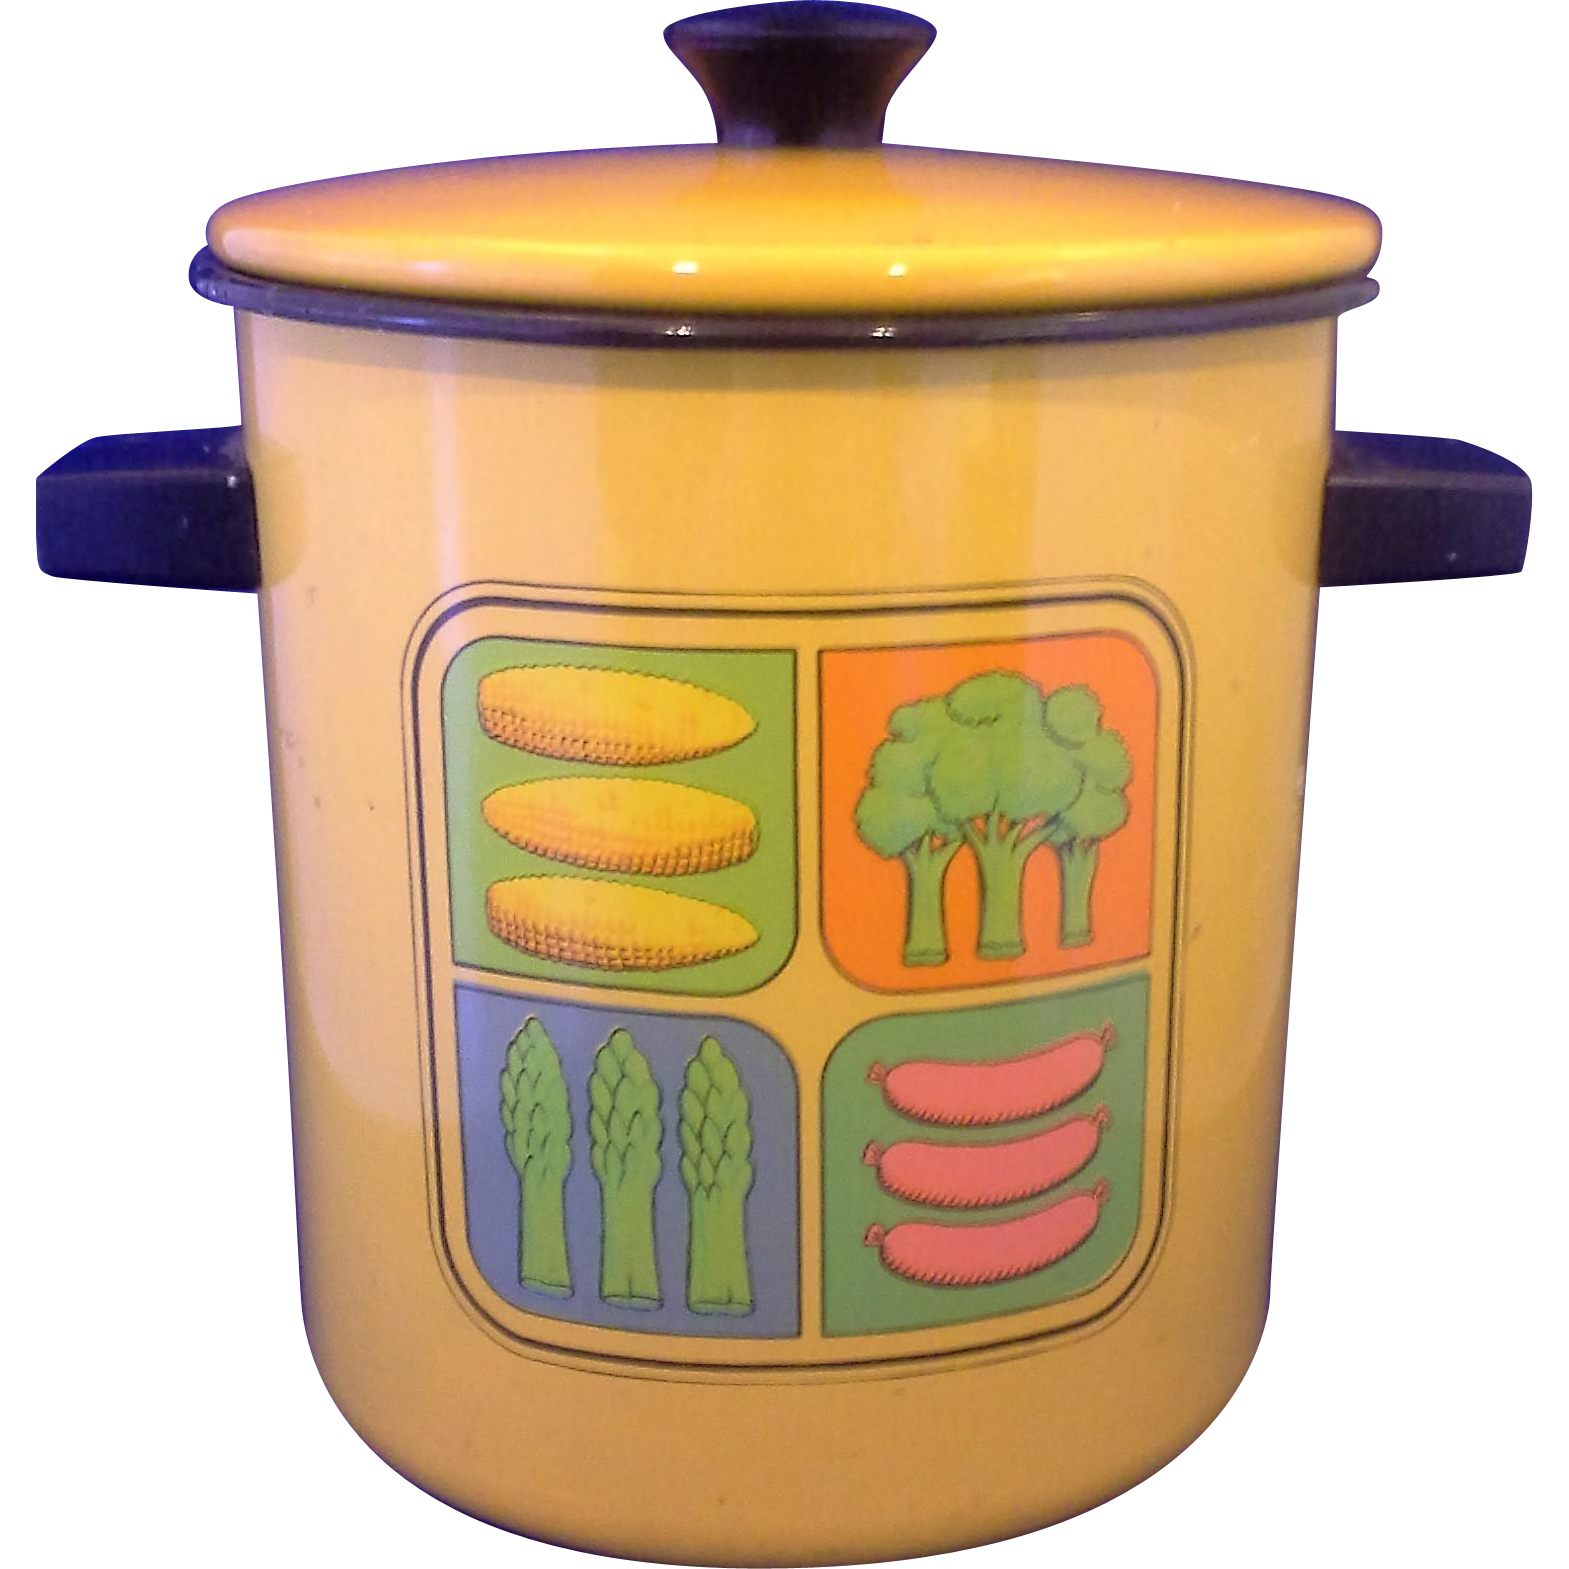 Harvest Gold Enamel Yellow Orange Narrow Stock Pot Veggies Black Trim